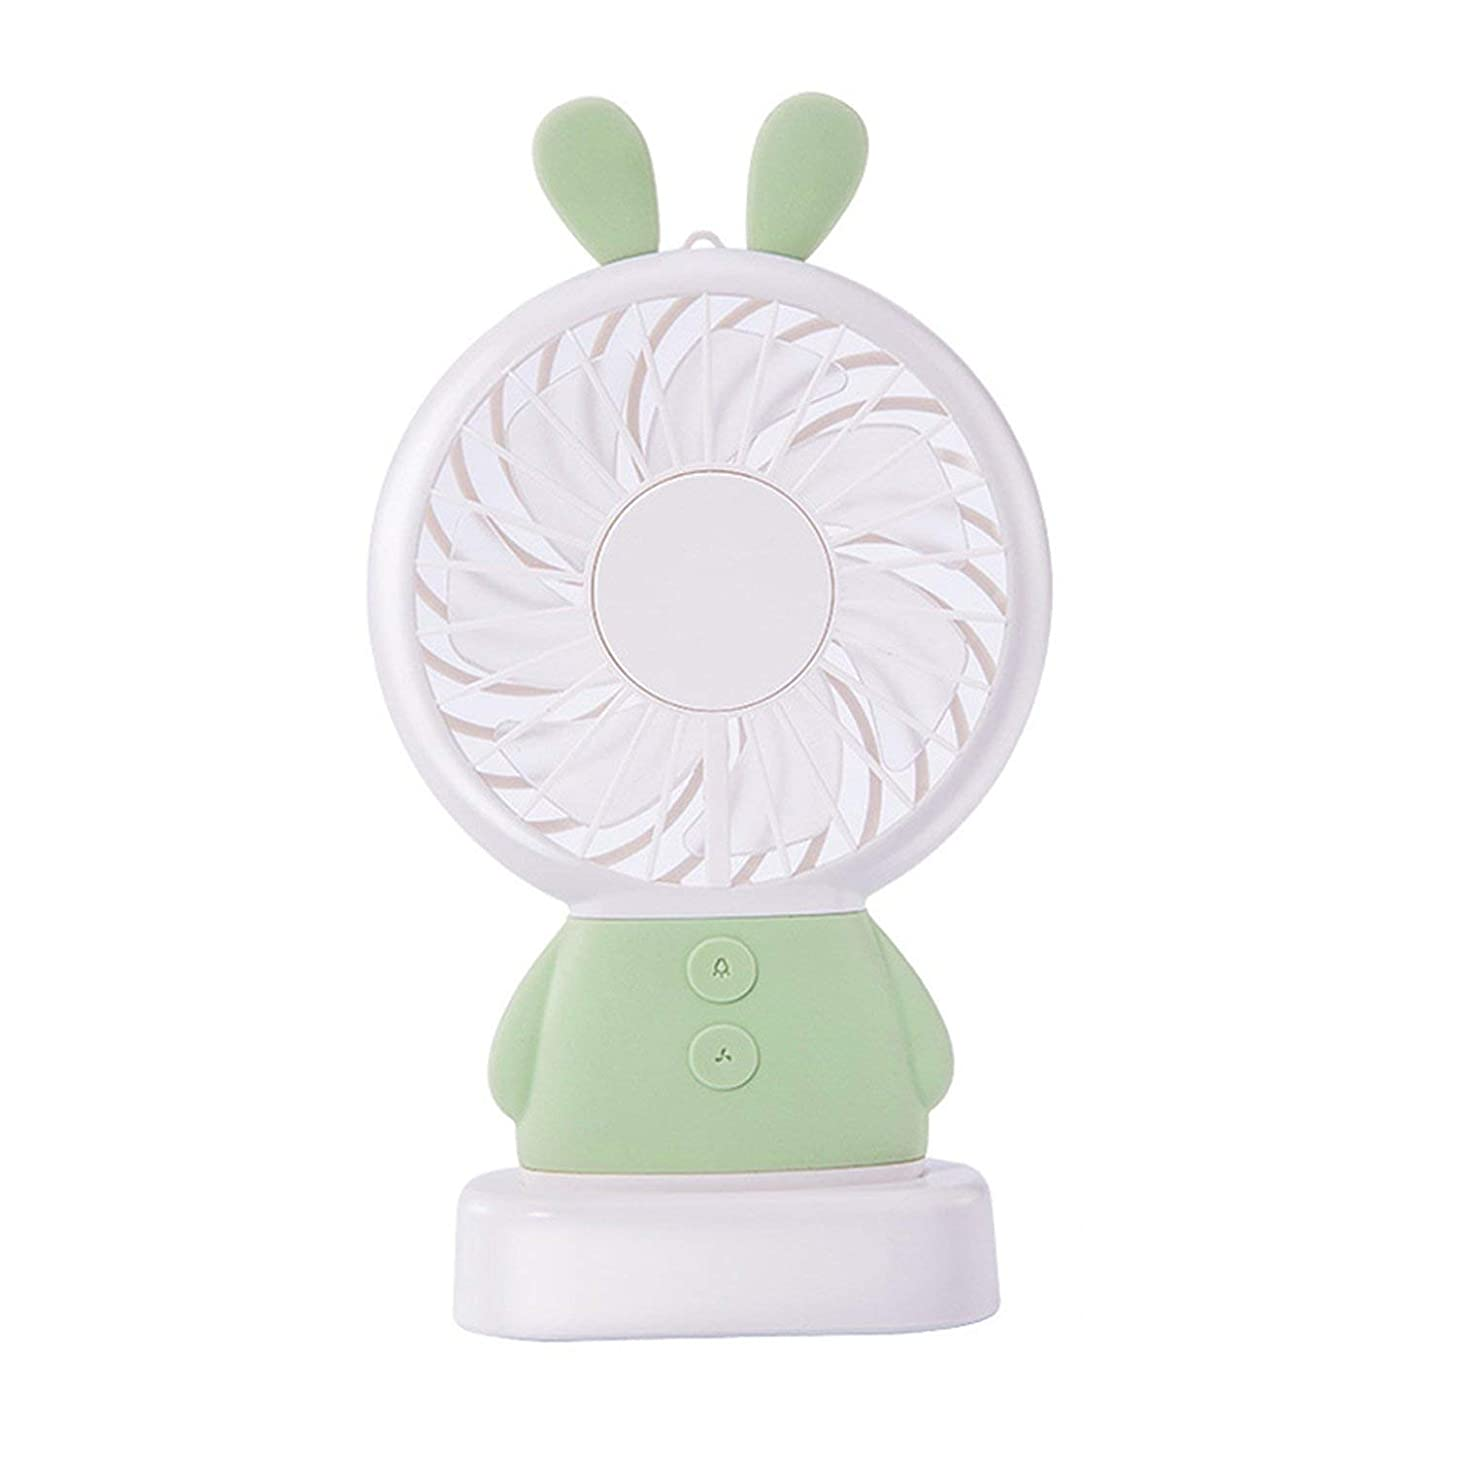 Beauty-inside Mini USB Fan Portable Hand Fan with LED Night Light Battery Operated USB Power Handheld Fan Cooler Electric Laptop Fan for Home,K-F1-Green